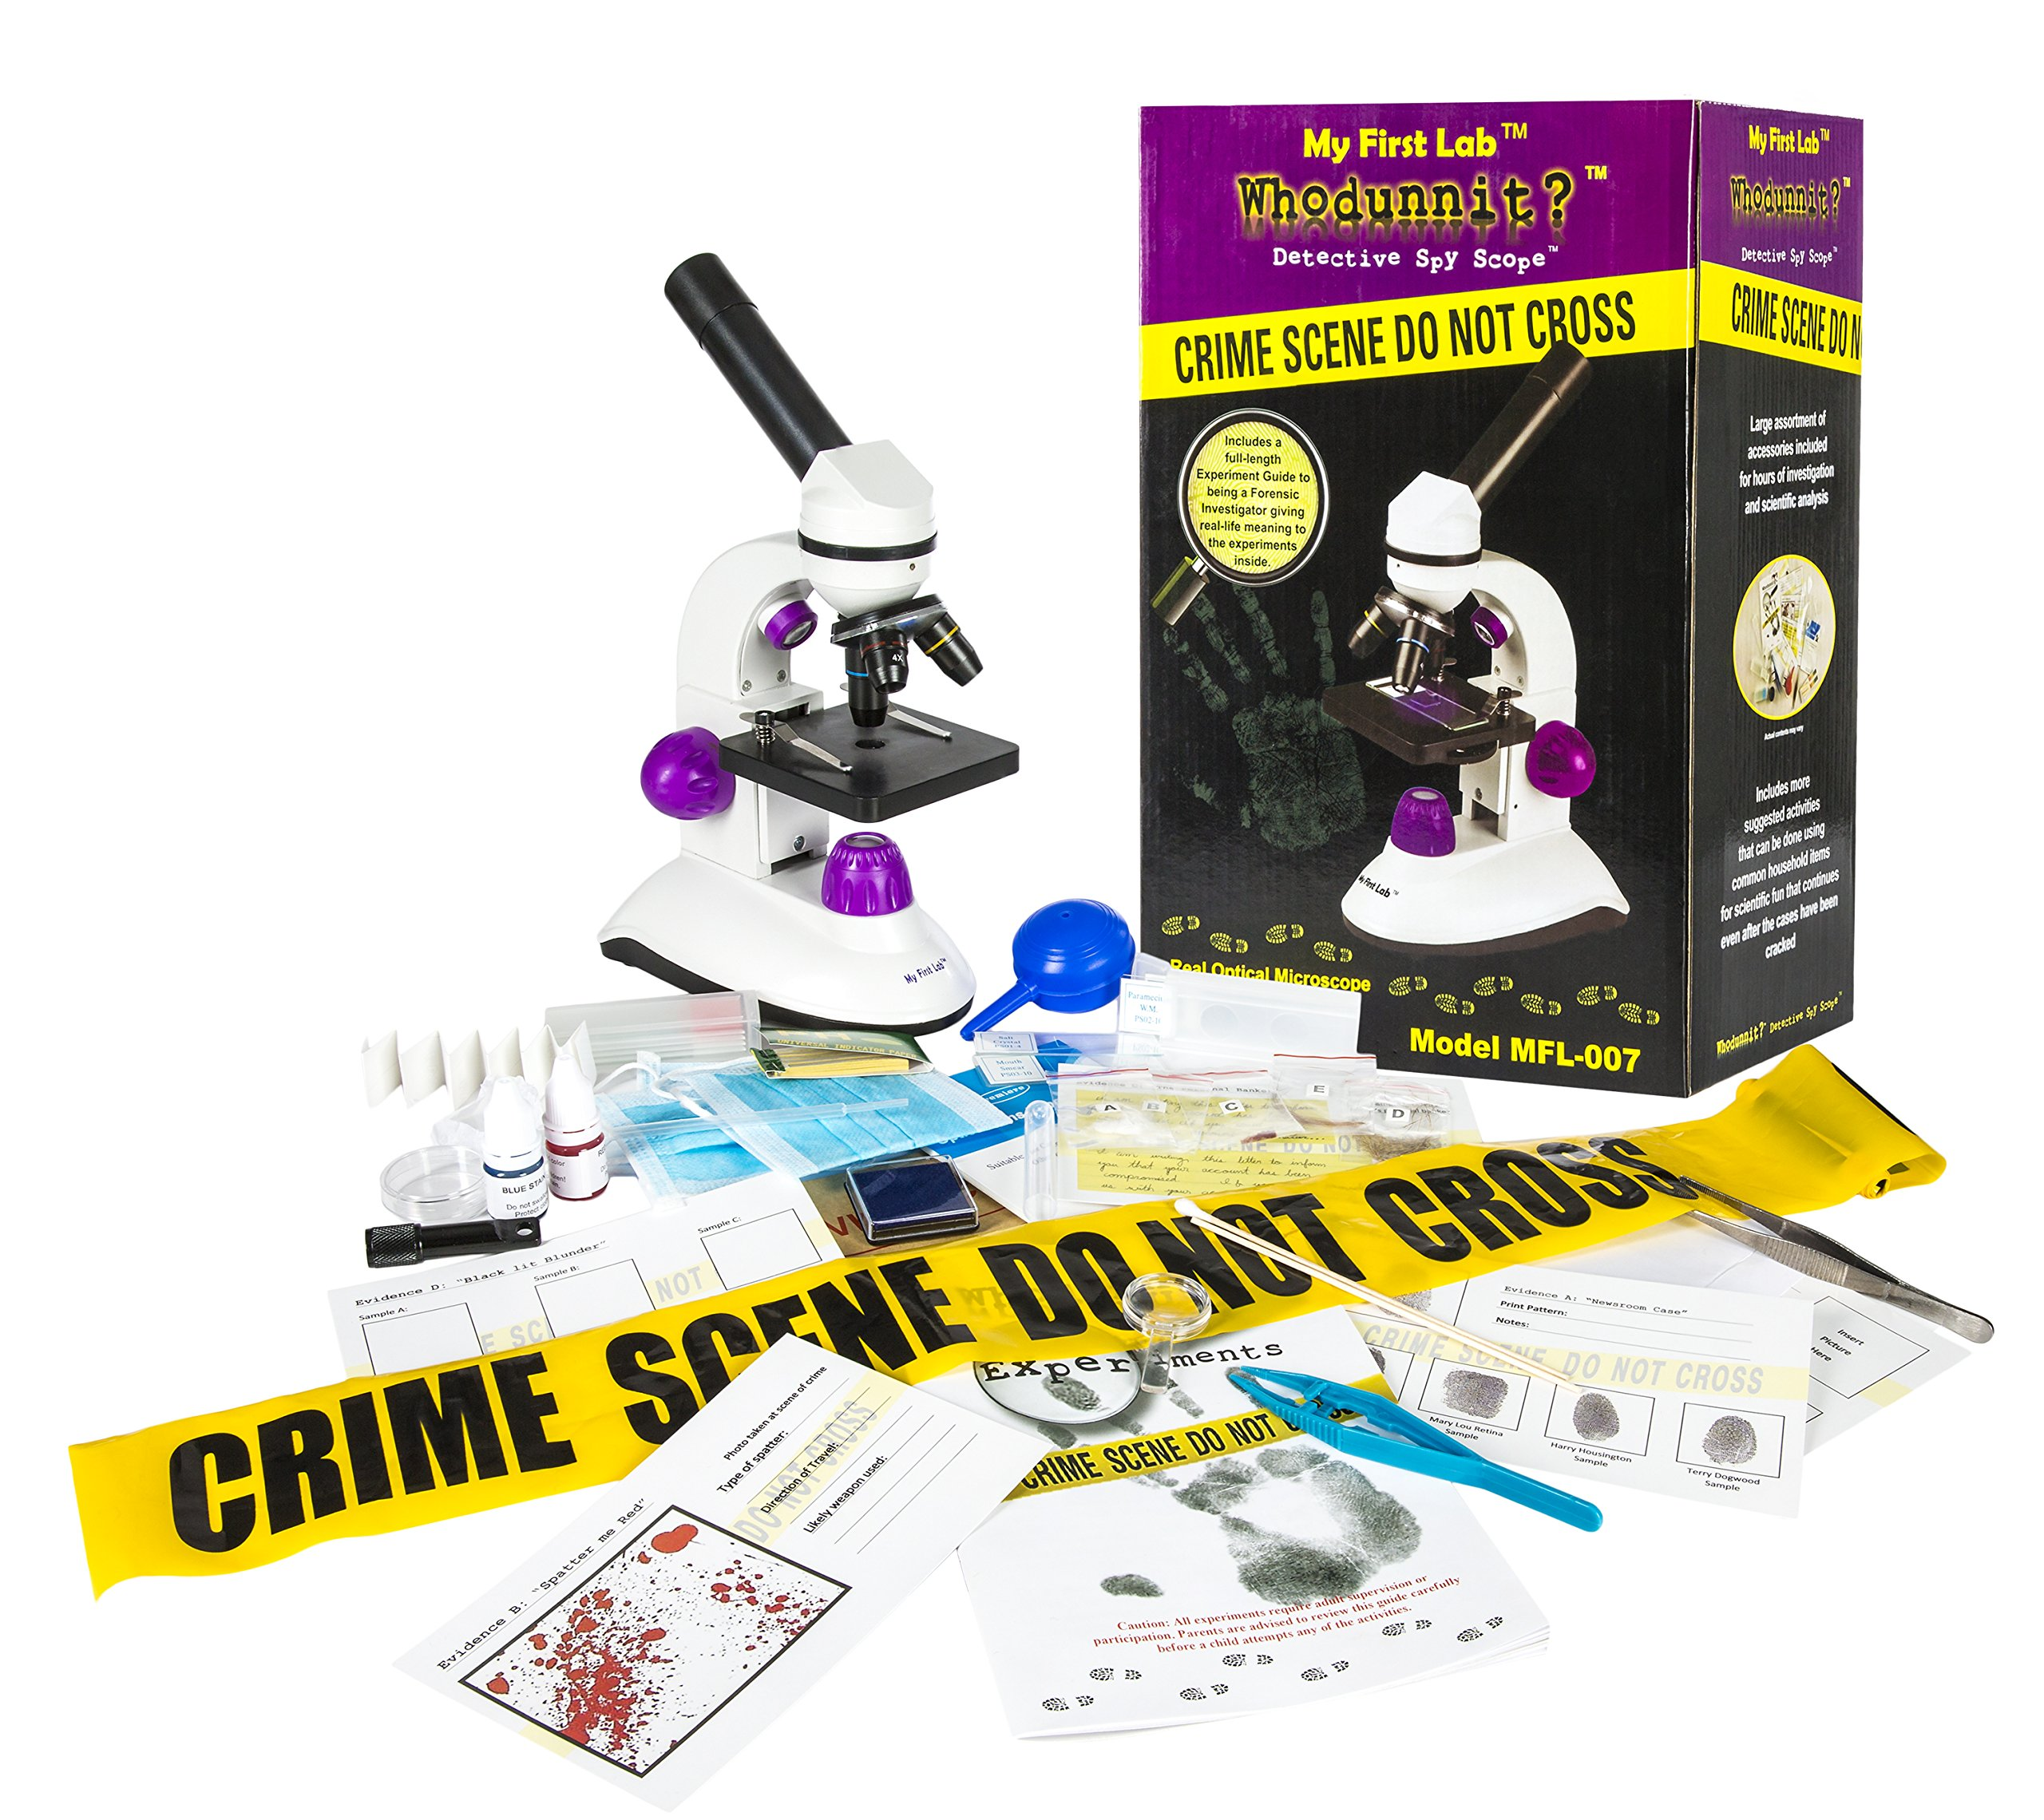 My First Lab Whodunnit? Microscope and Forensic Accessory Kit - Recreate and Solve a Crime Scene, Real Glass Optics with 10X Eyepiece, 4X, 10X, 40X Magnification by C & A Scientific